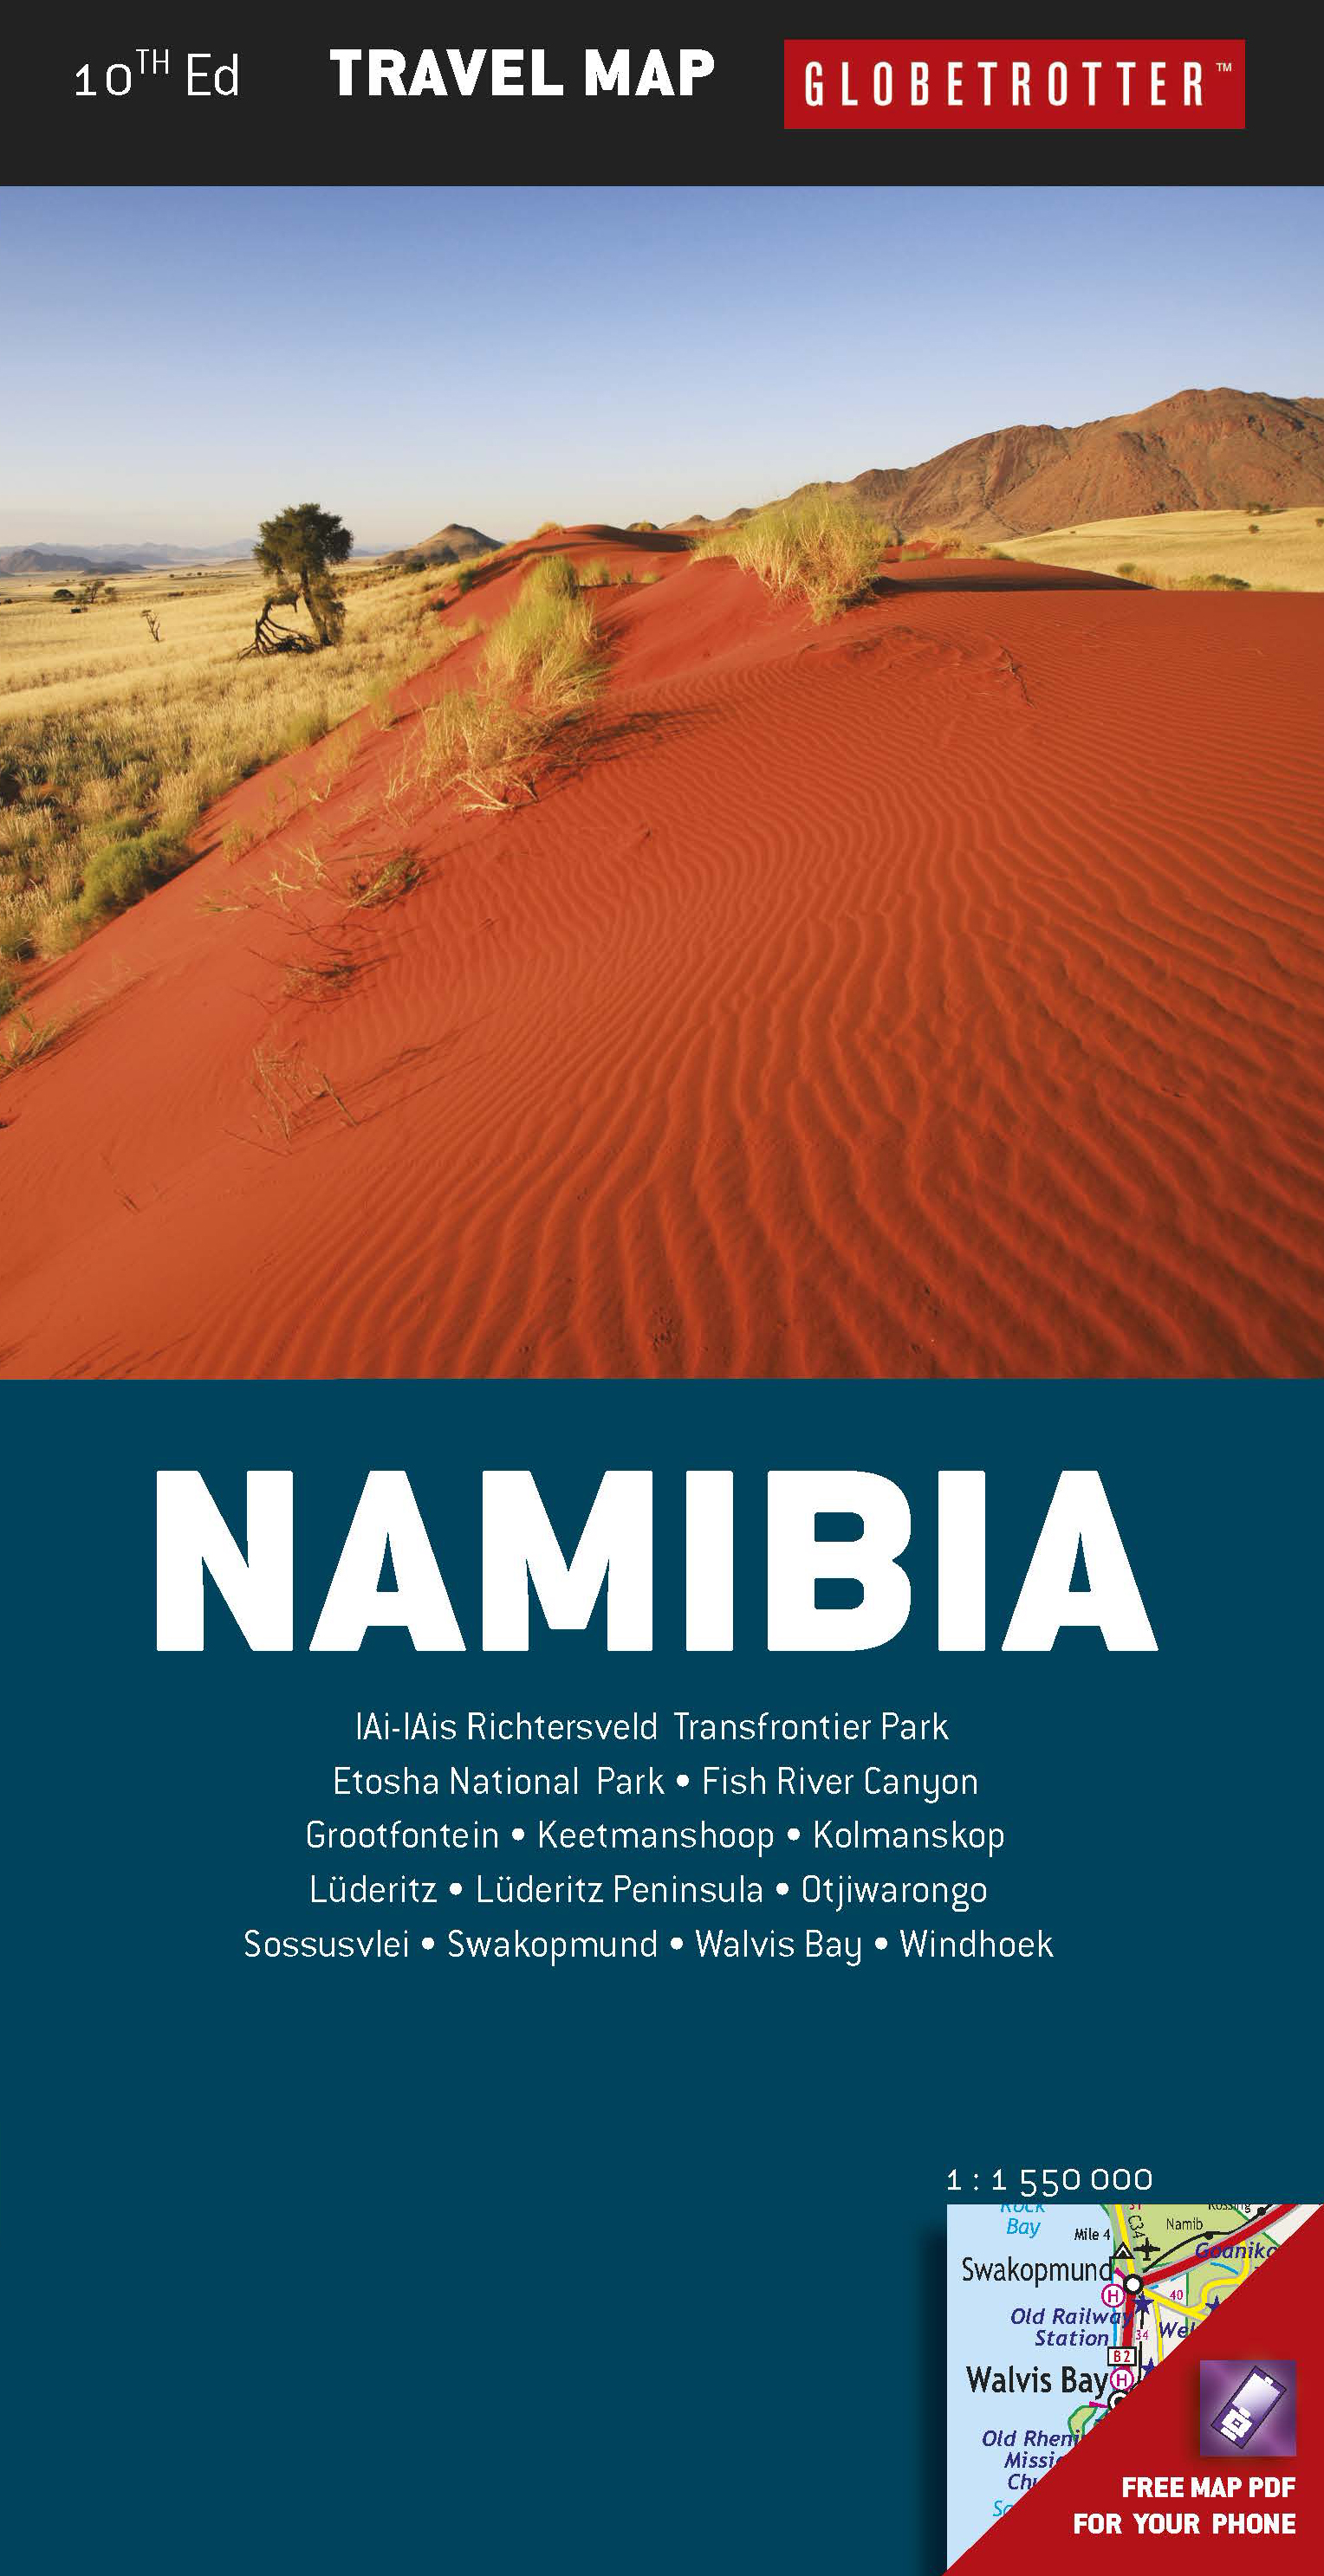 Picture of Globetrotter Map: Namibia